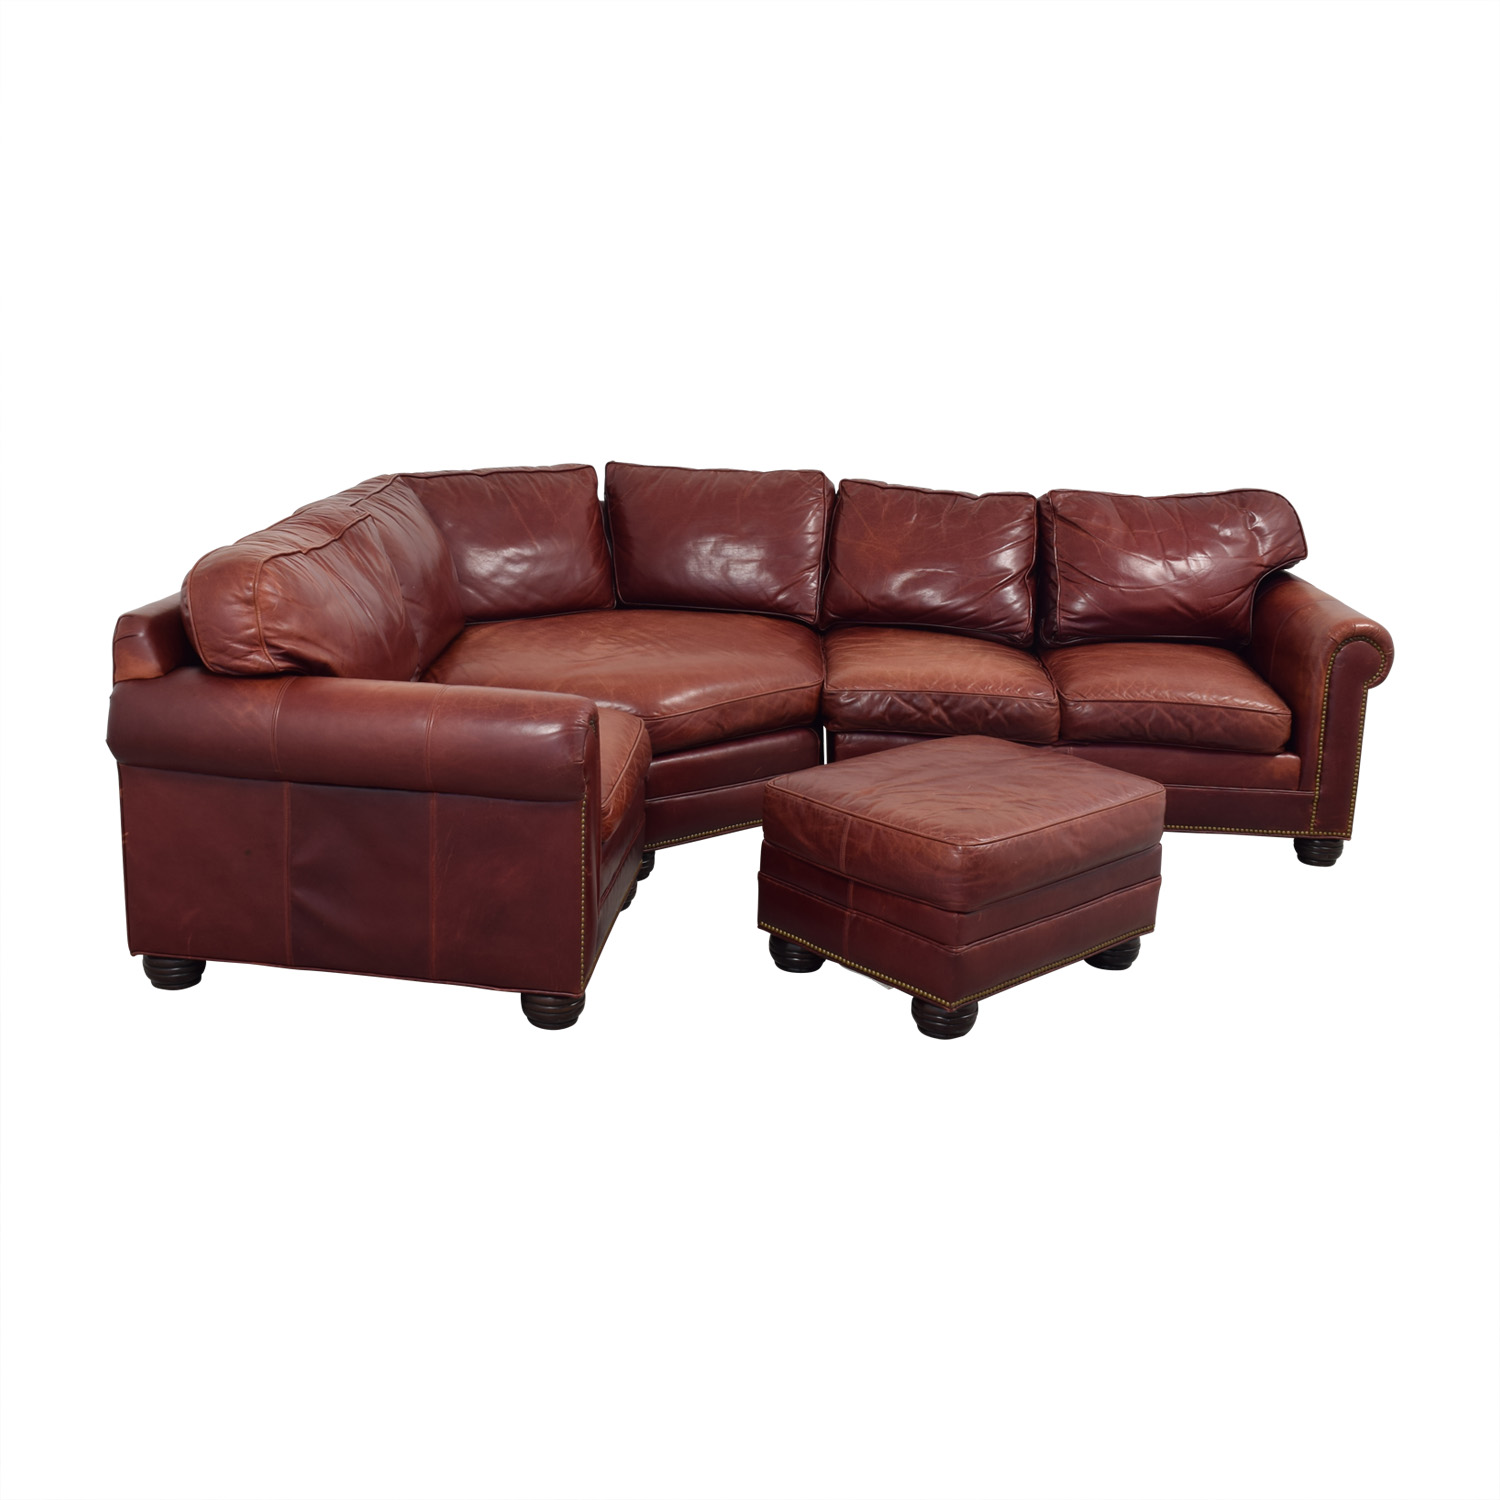 Zagaroli Classics Zagaroli Classics Oxblood Leather Sectional with Ottoman used